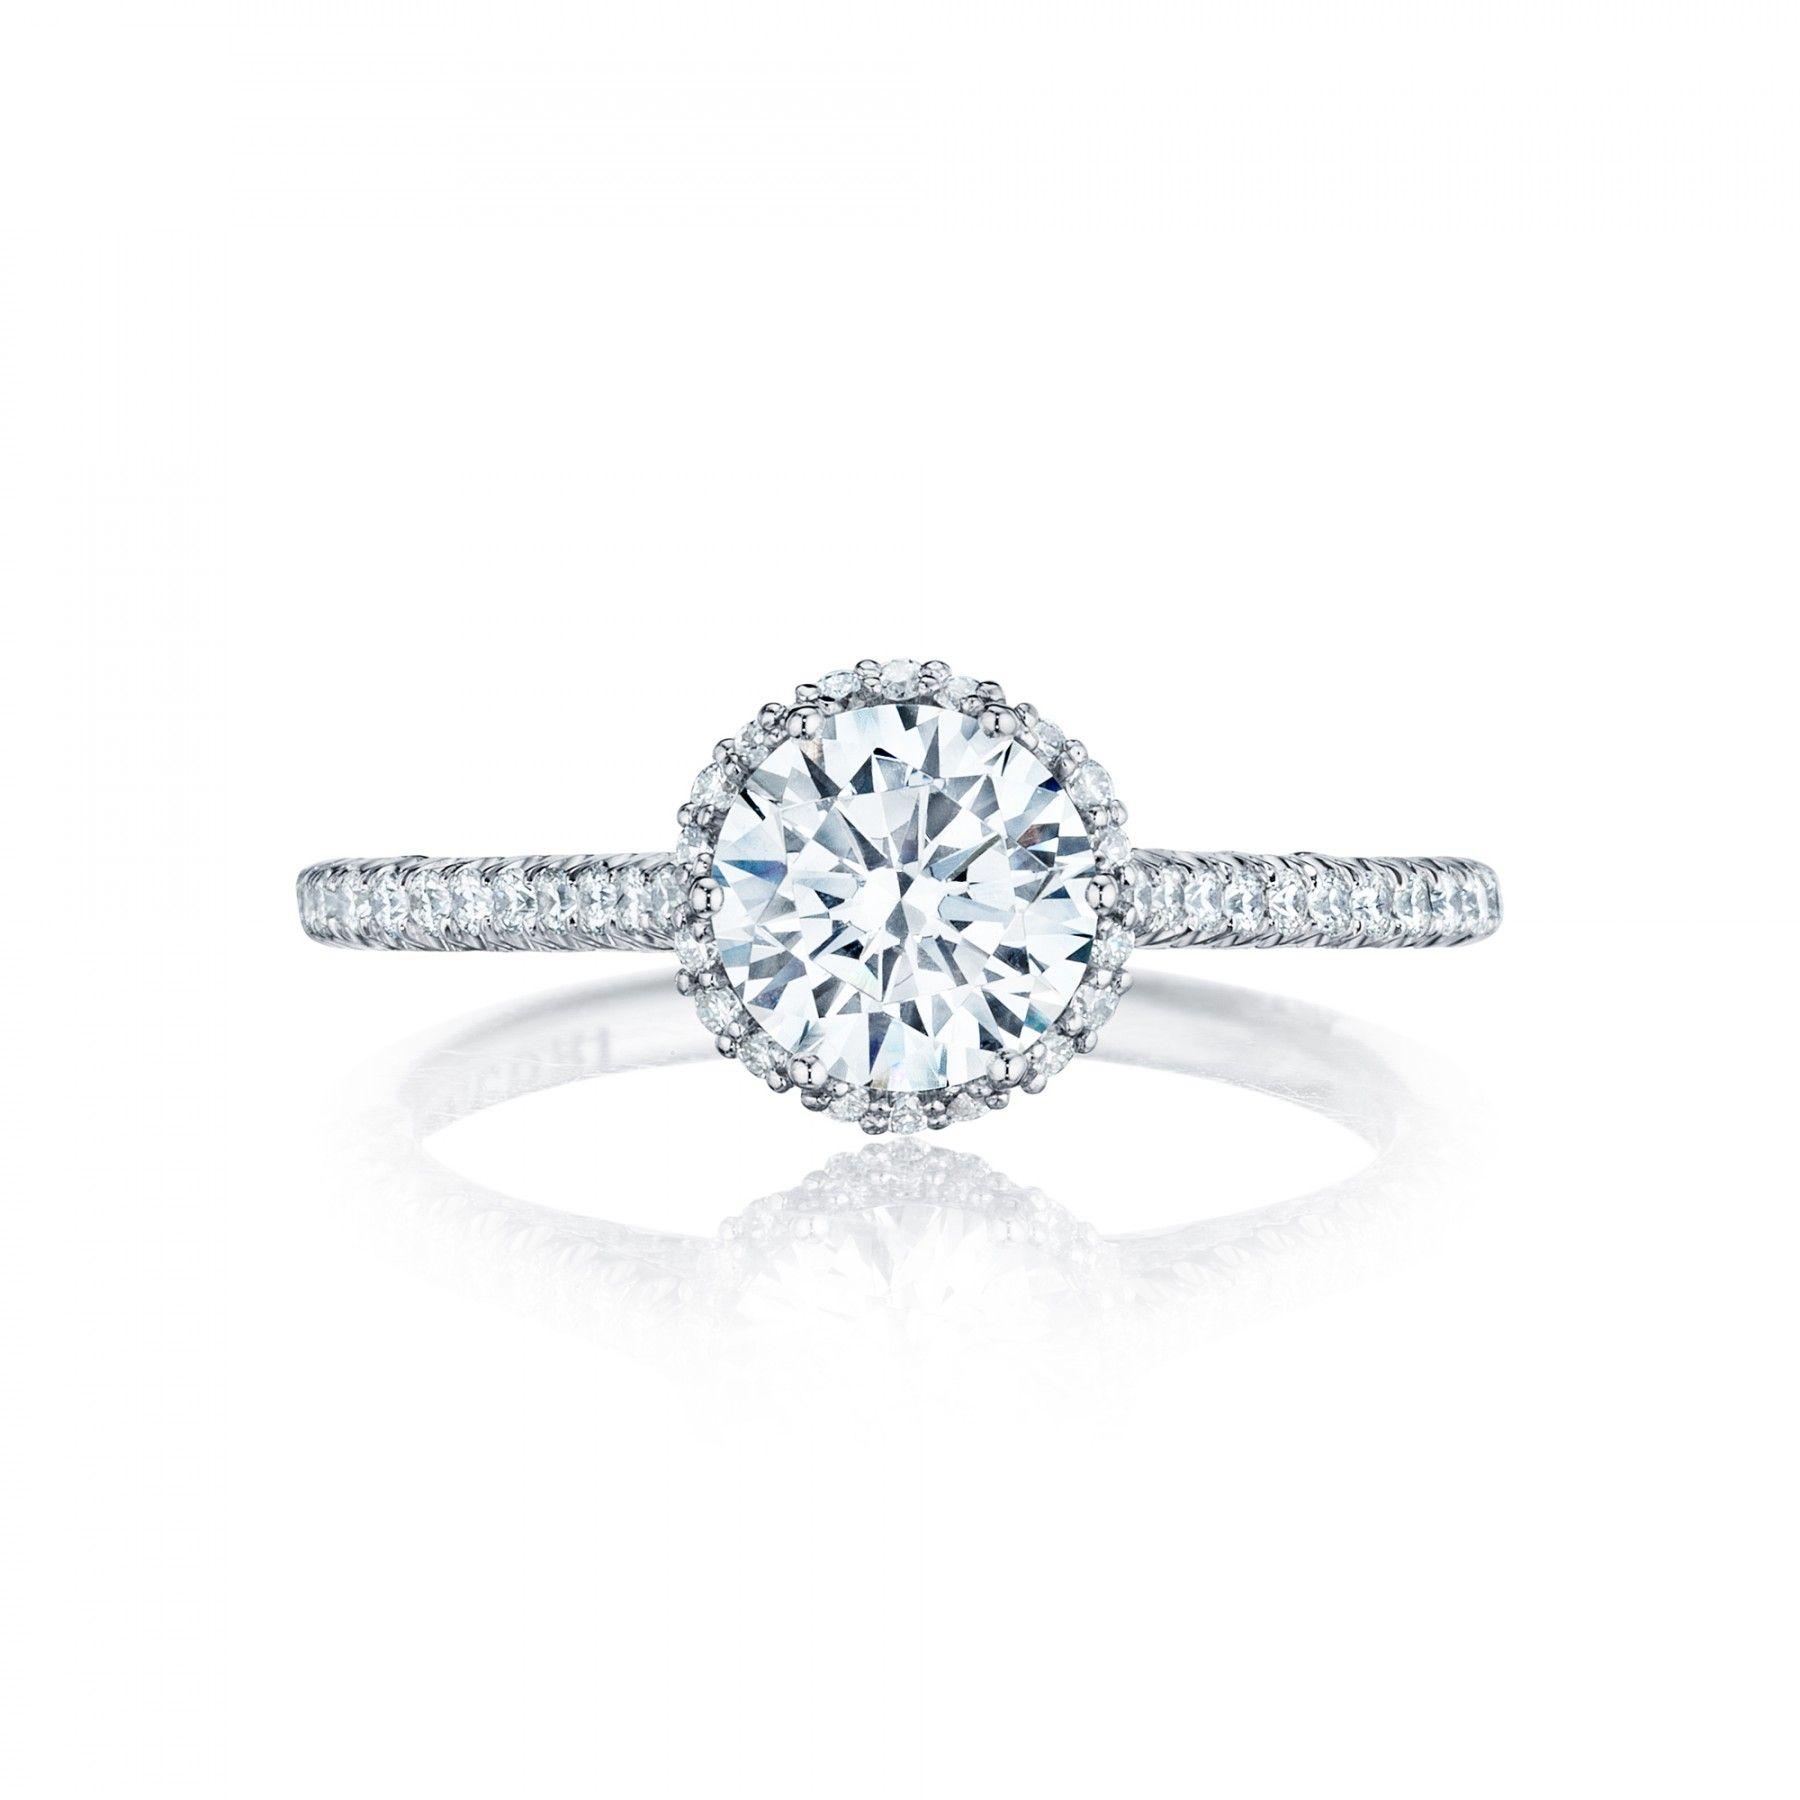 setting the centrepiece of shoulder wg claw stylish precision gold diamond engagement white four in exquisite held ring eleanor index rings is radiant subtle this cut a solitaire set